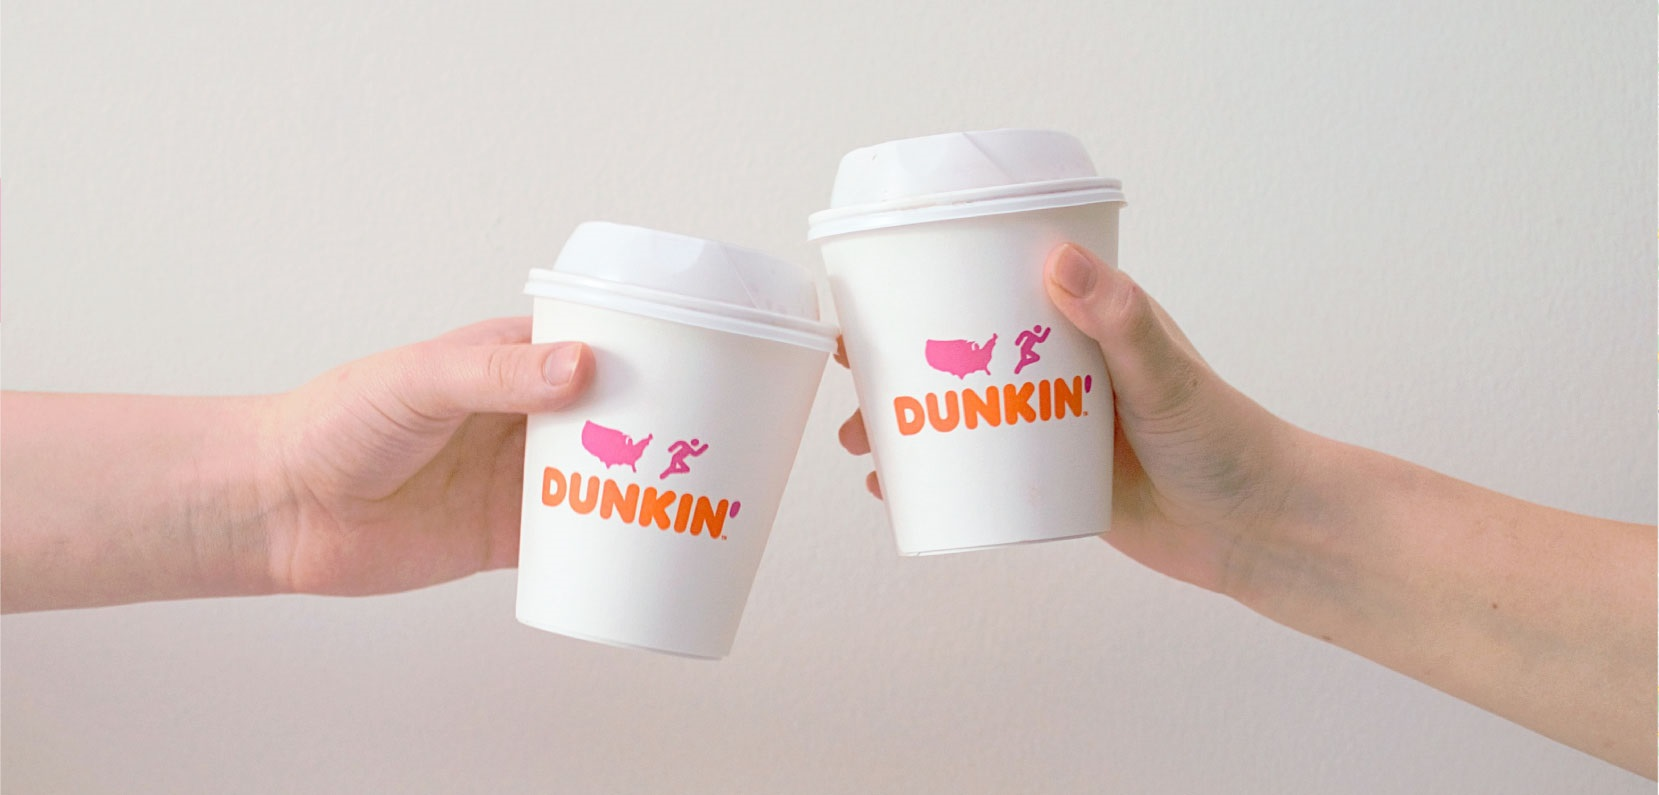 Dunkin' increased store traffic by testing Google Maps